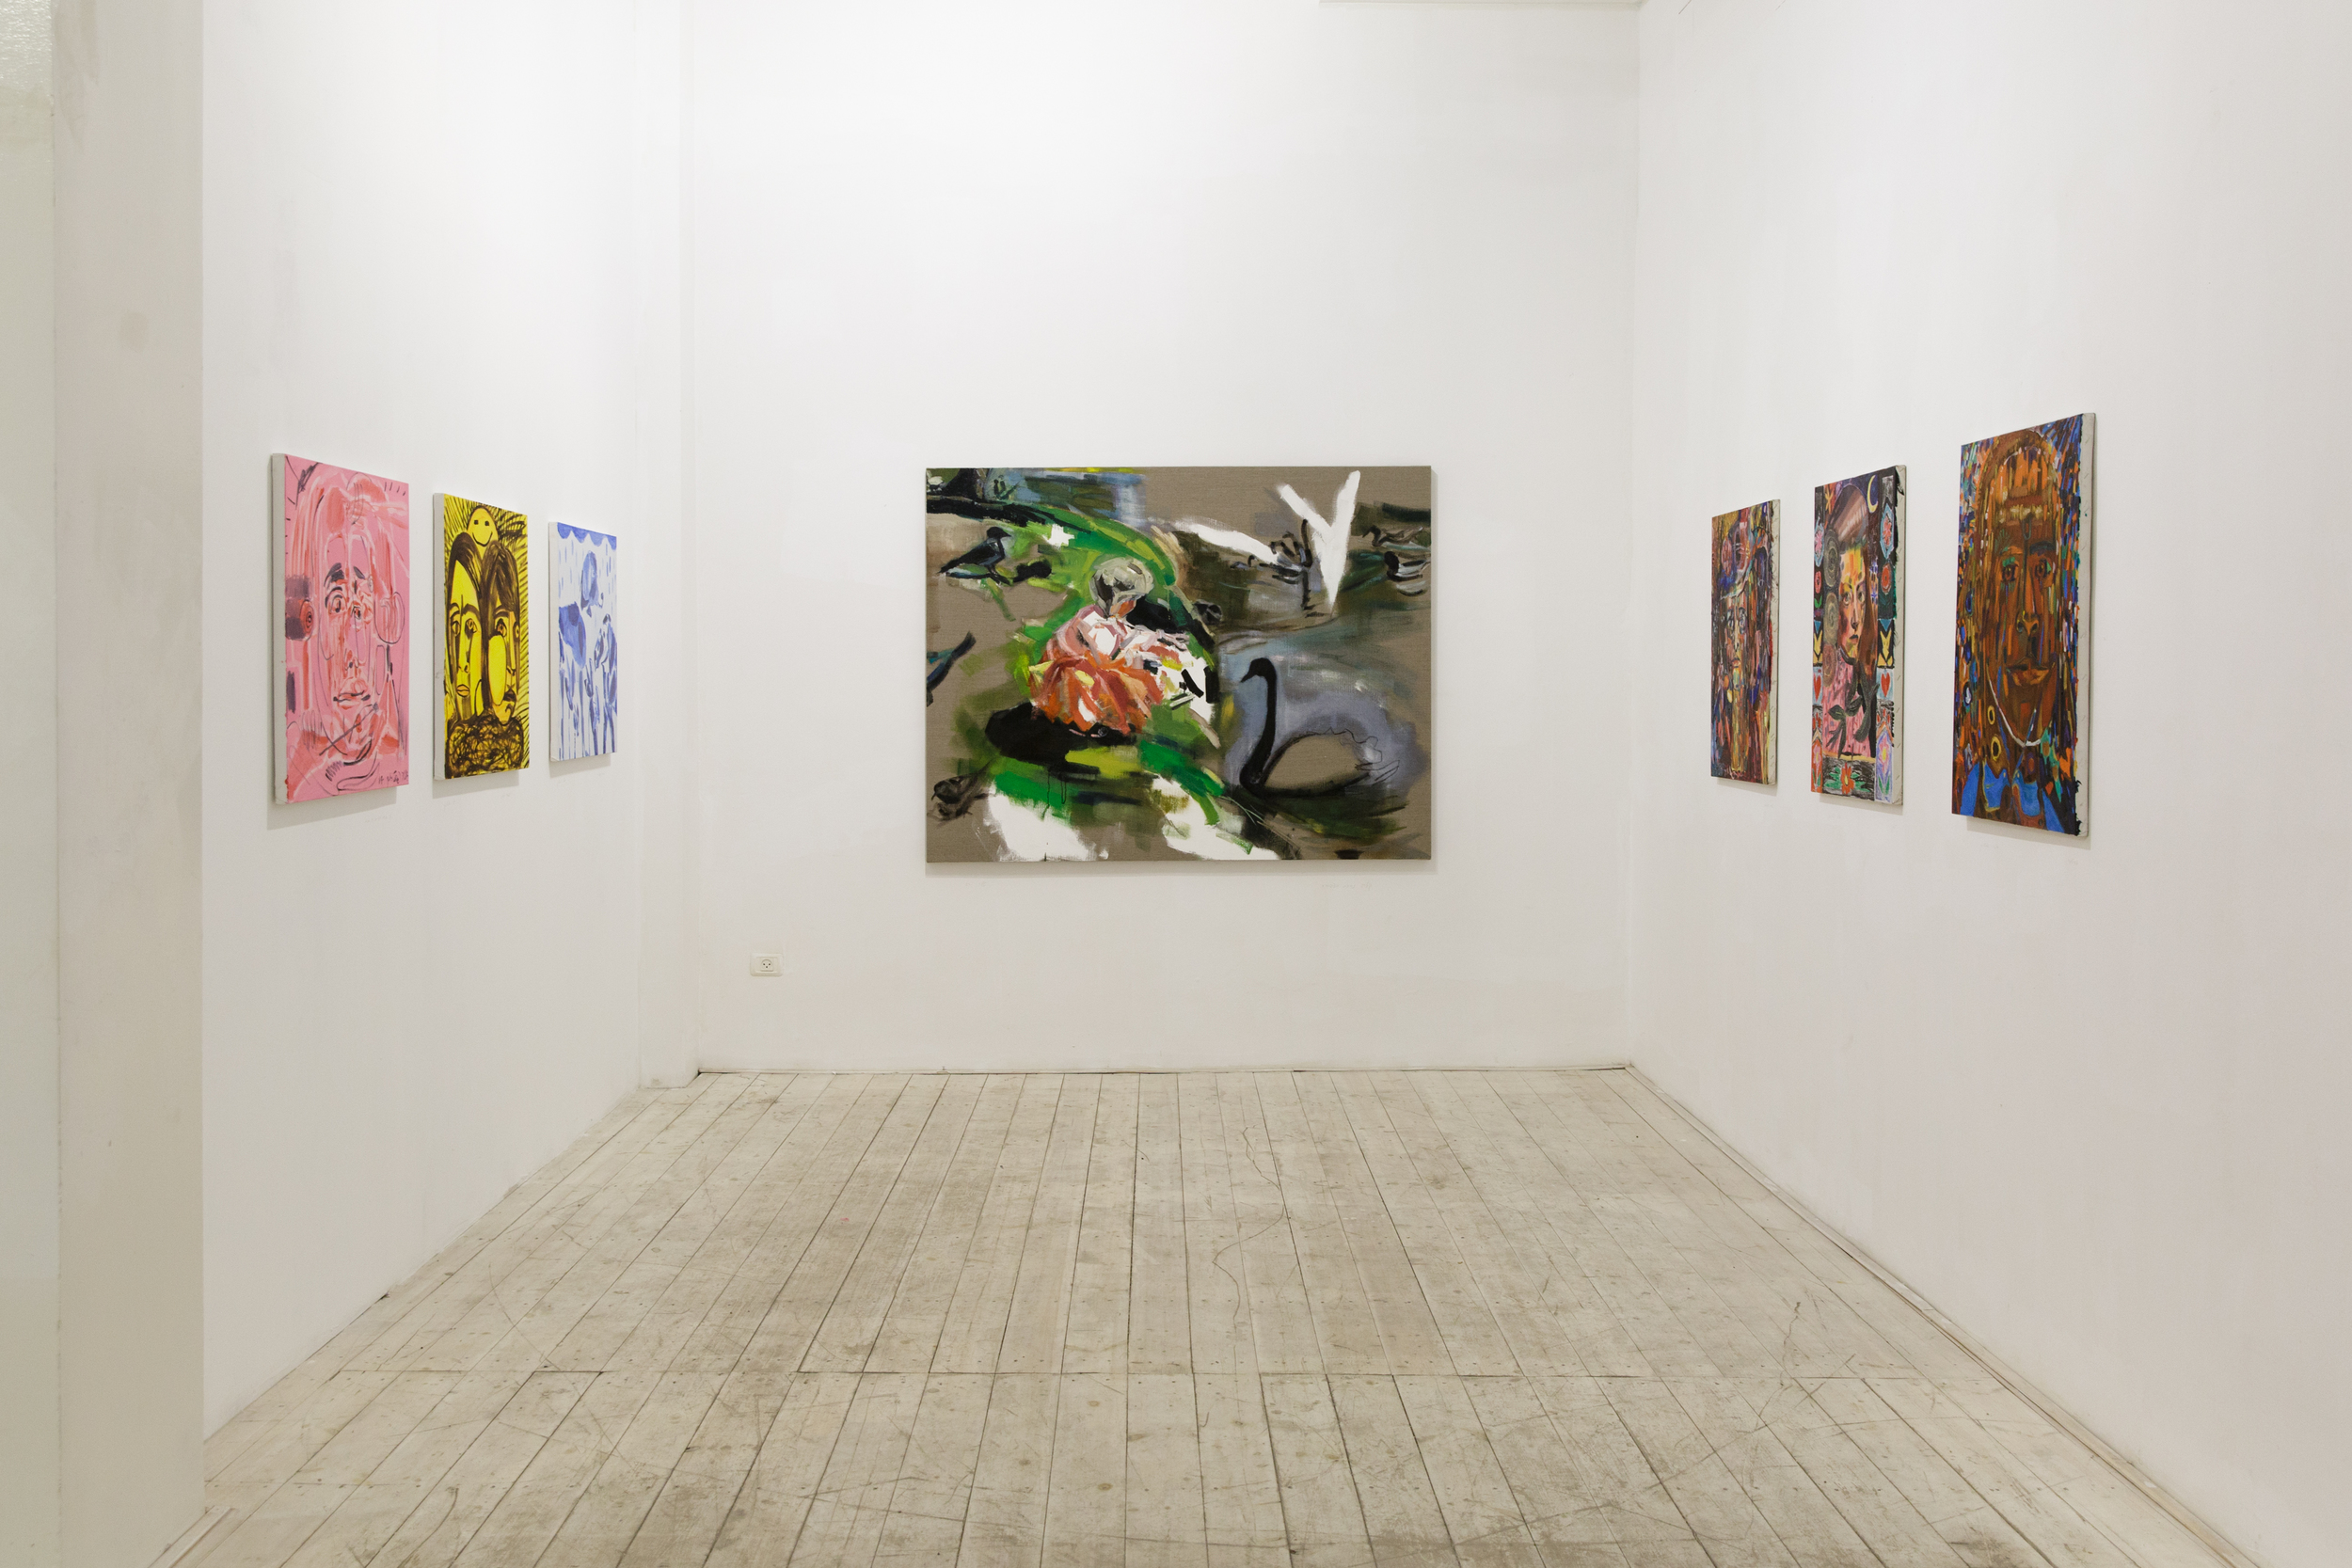 How to avoid mistakes, Alfred gallery, Tel Aviv, 2014, a dual exhibition with the painter Galia Pasternak.